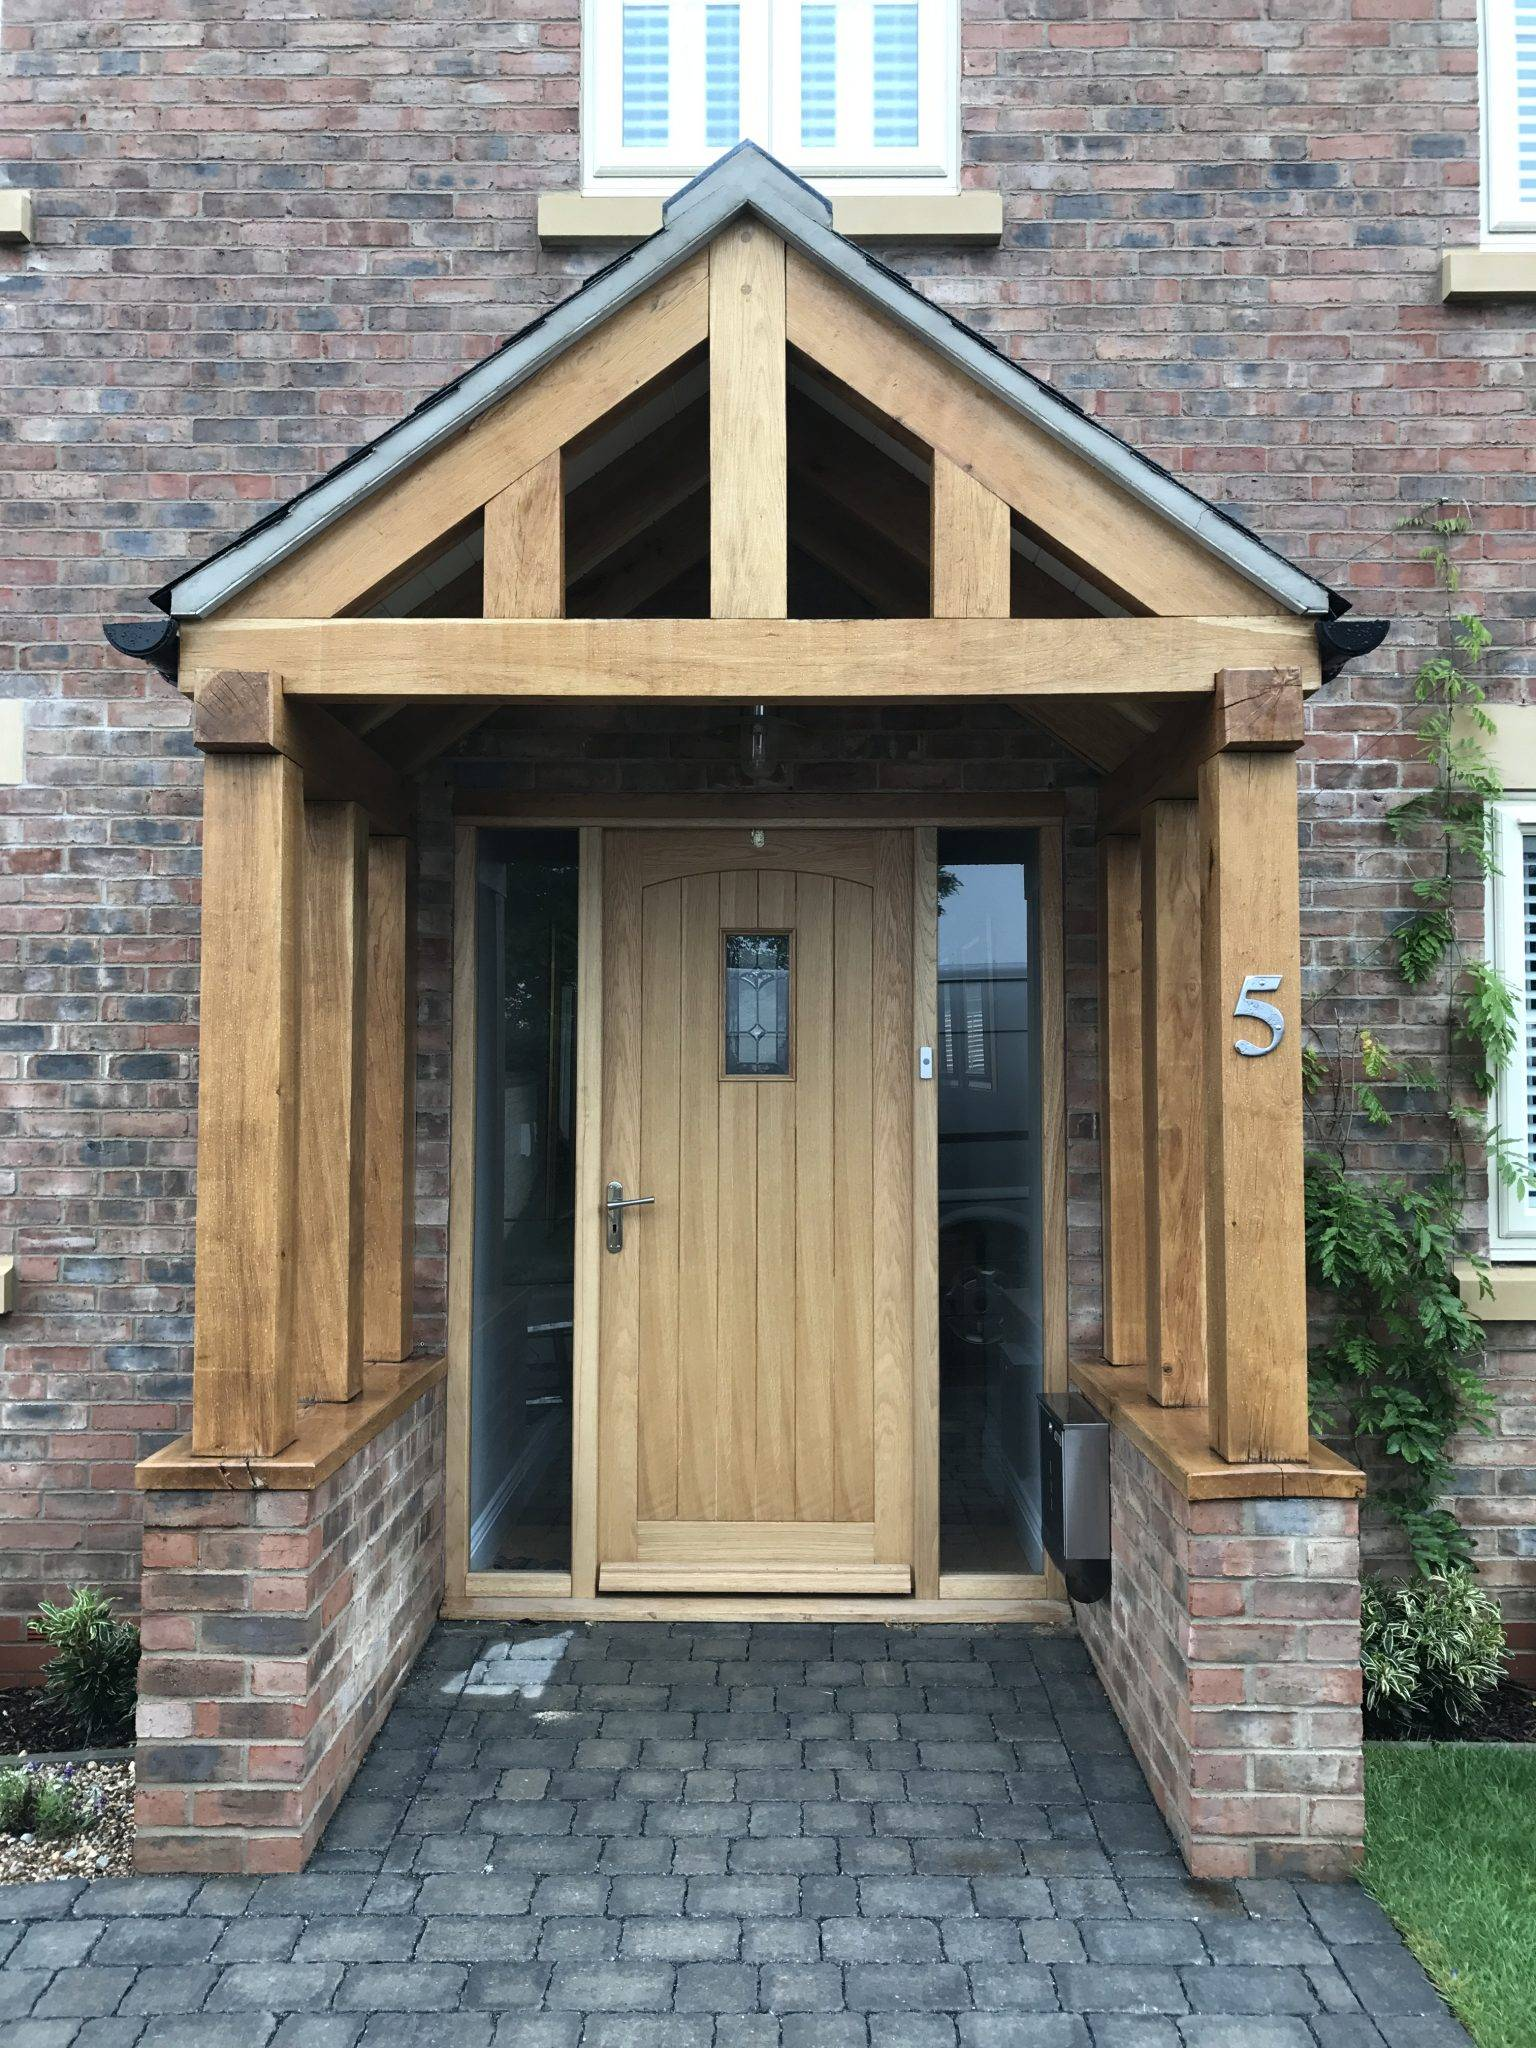 Brinard Joinery Ltd; Masters Of Bespoke Joinery Across The